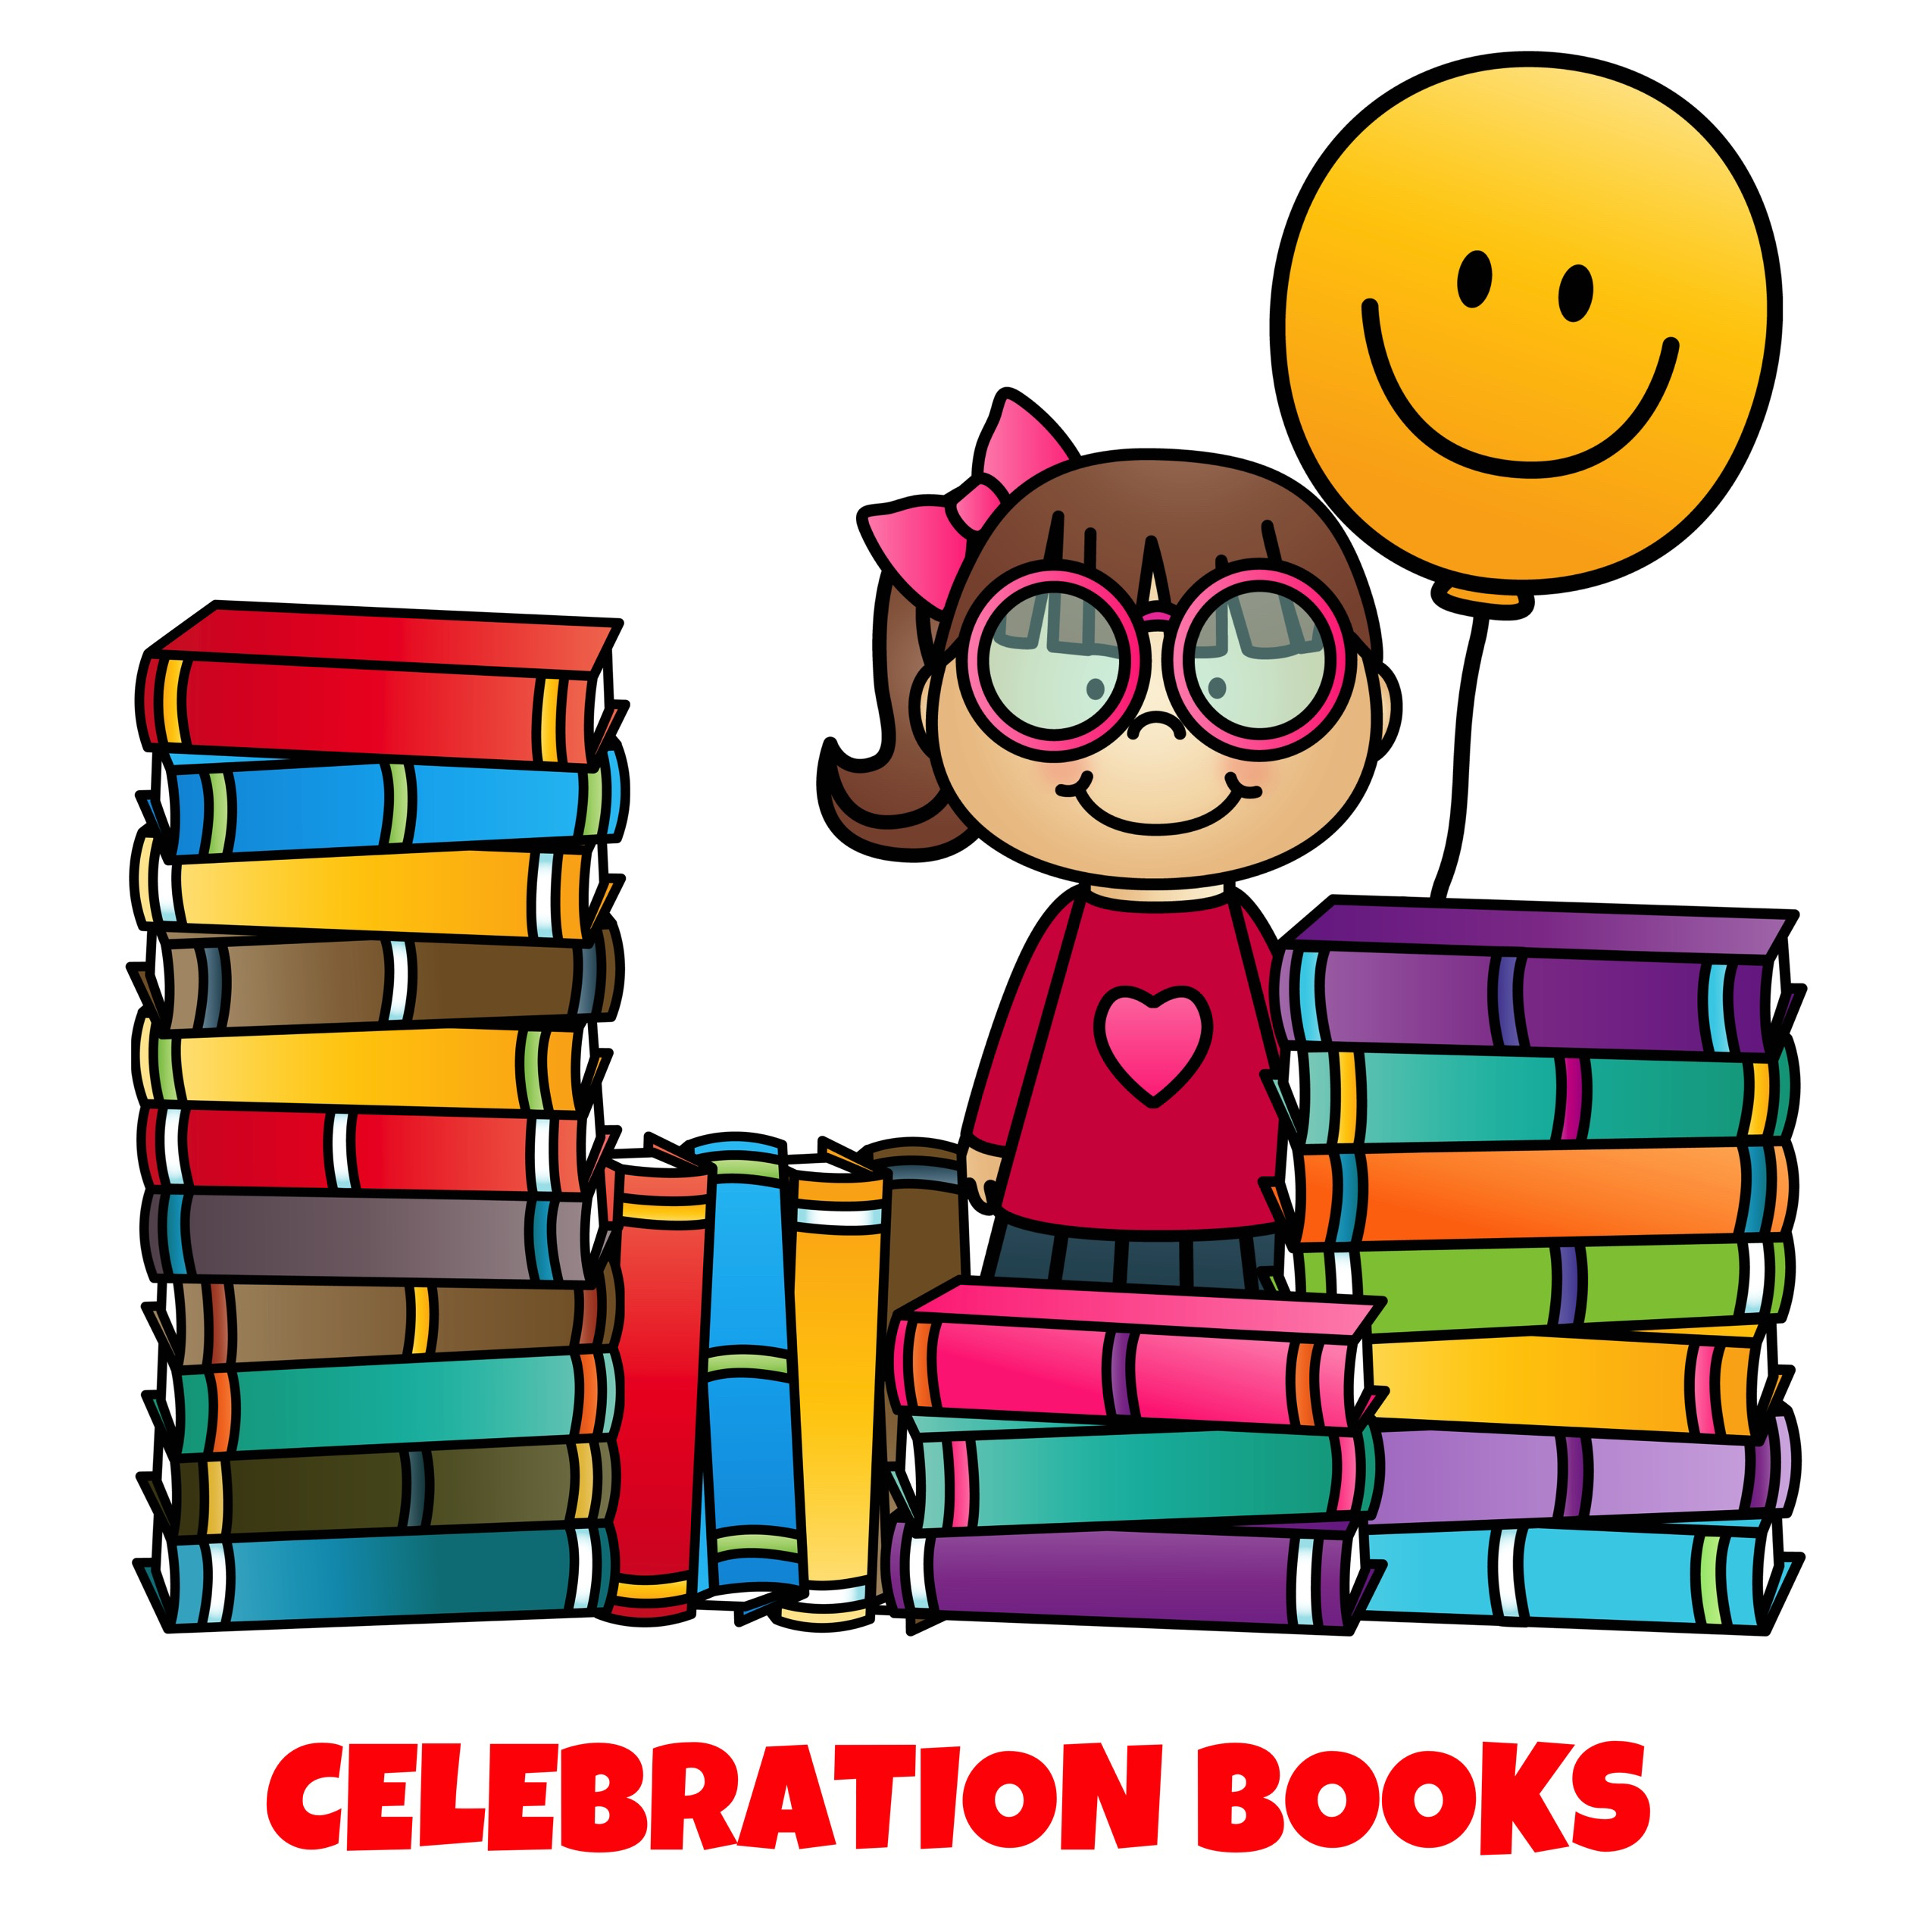 braeside celebration book v3